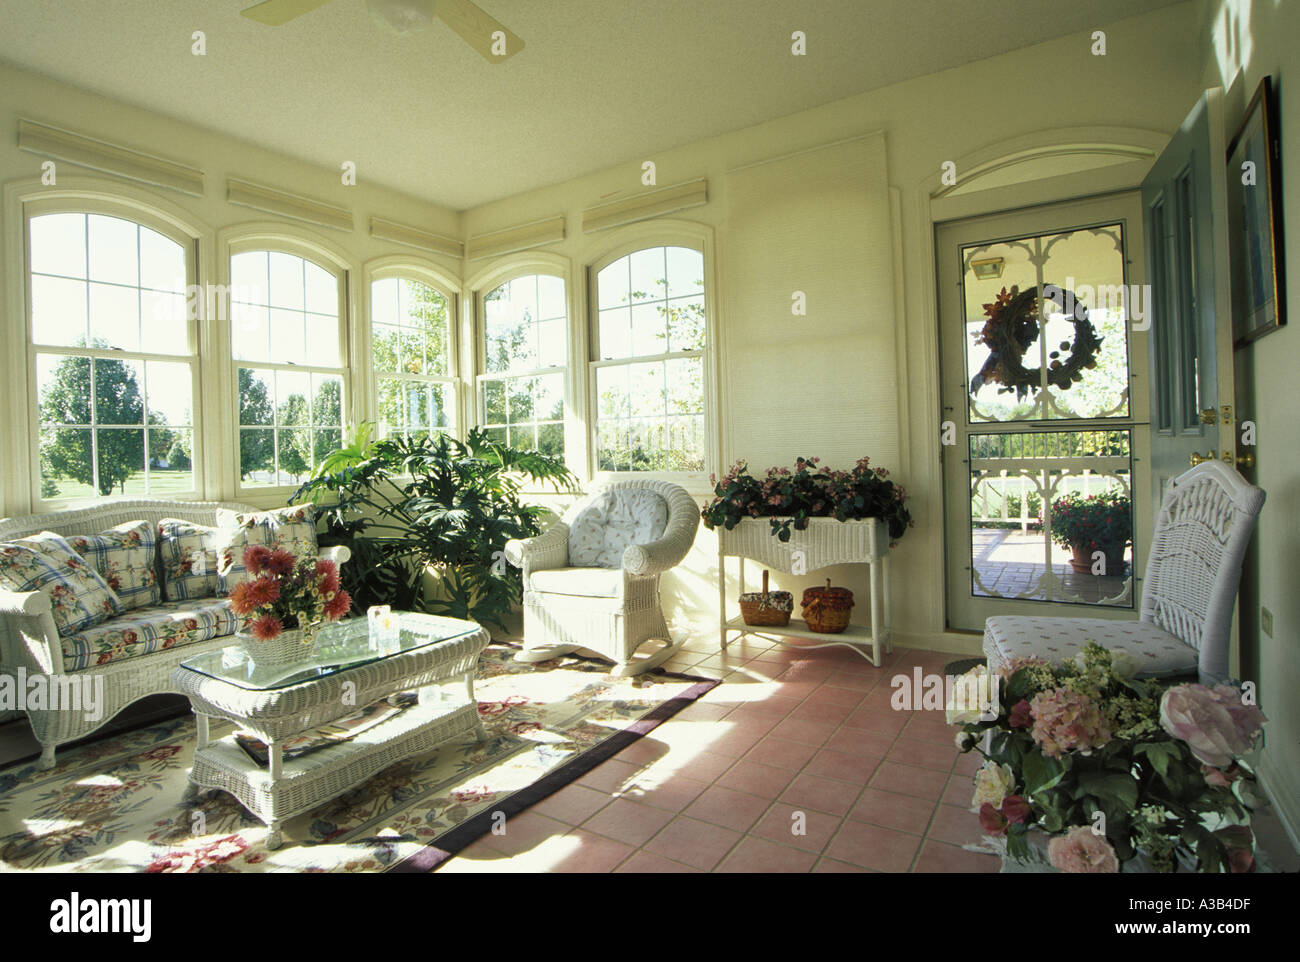 Glassed In Porch With White Wicker Furniture And Tile Floor Missouri